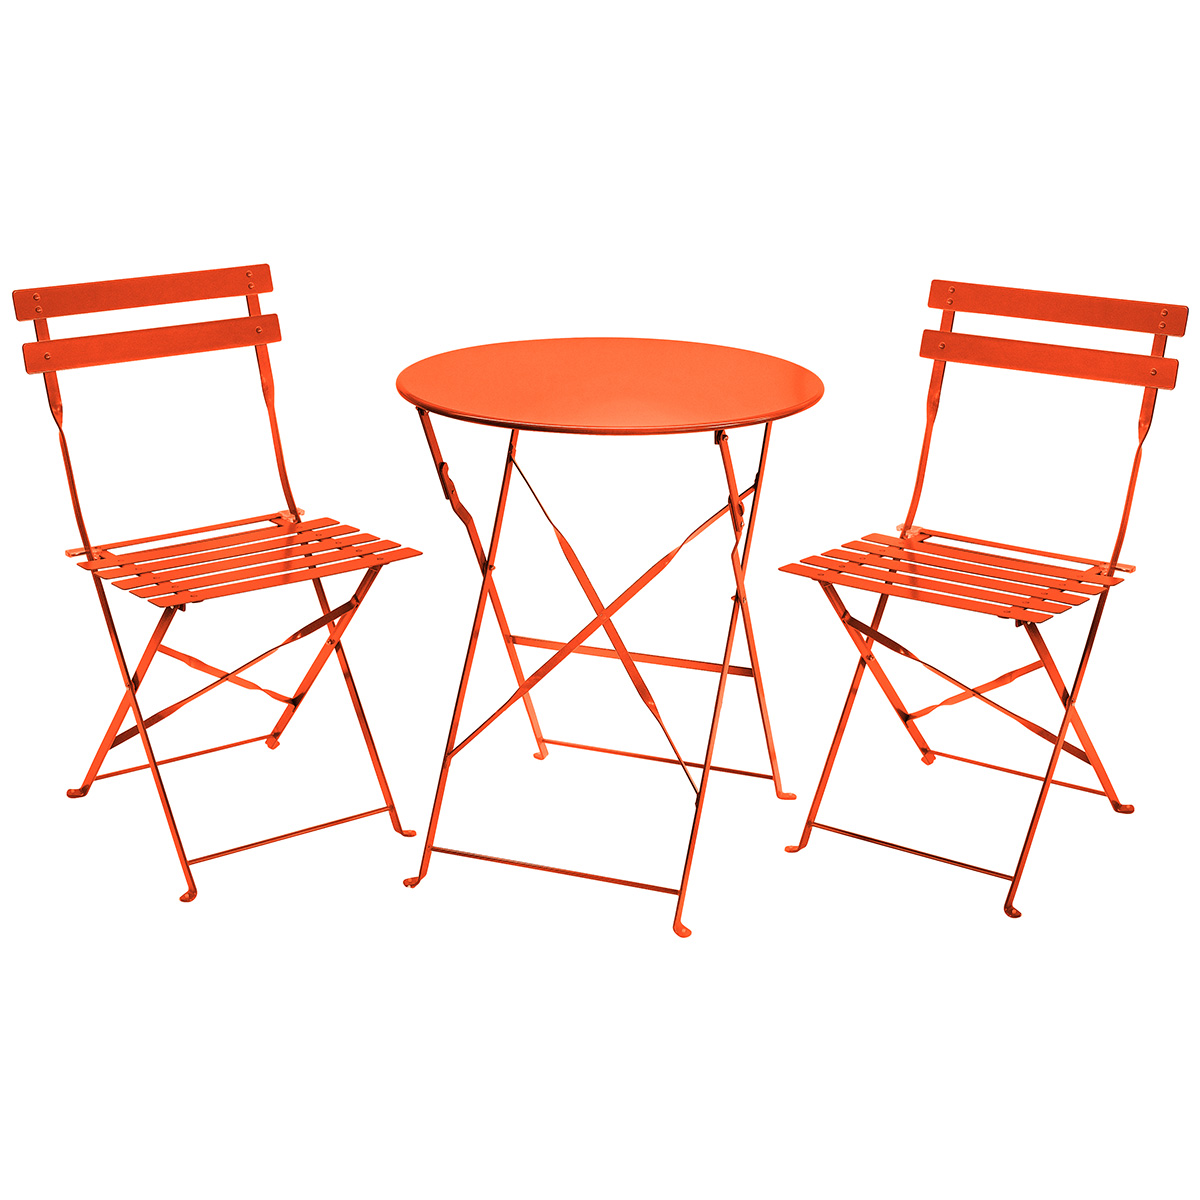 Charles bentley 3 piece metal bistro set garden patio for Metal patio table and chairs set